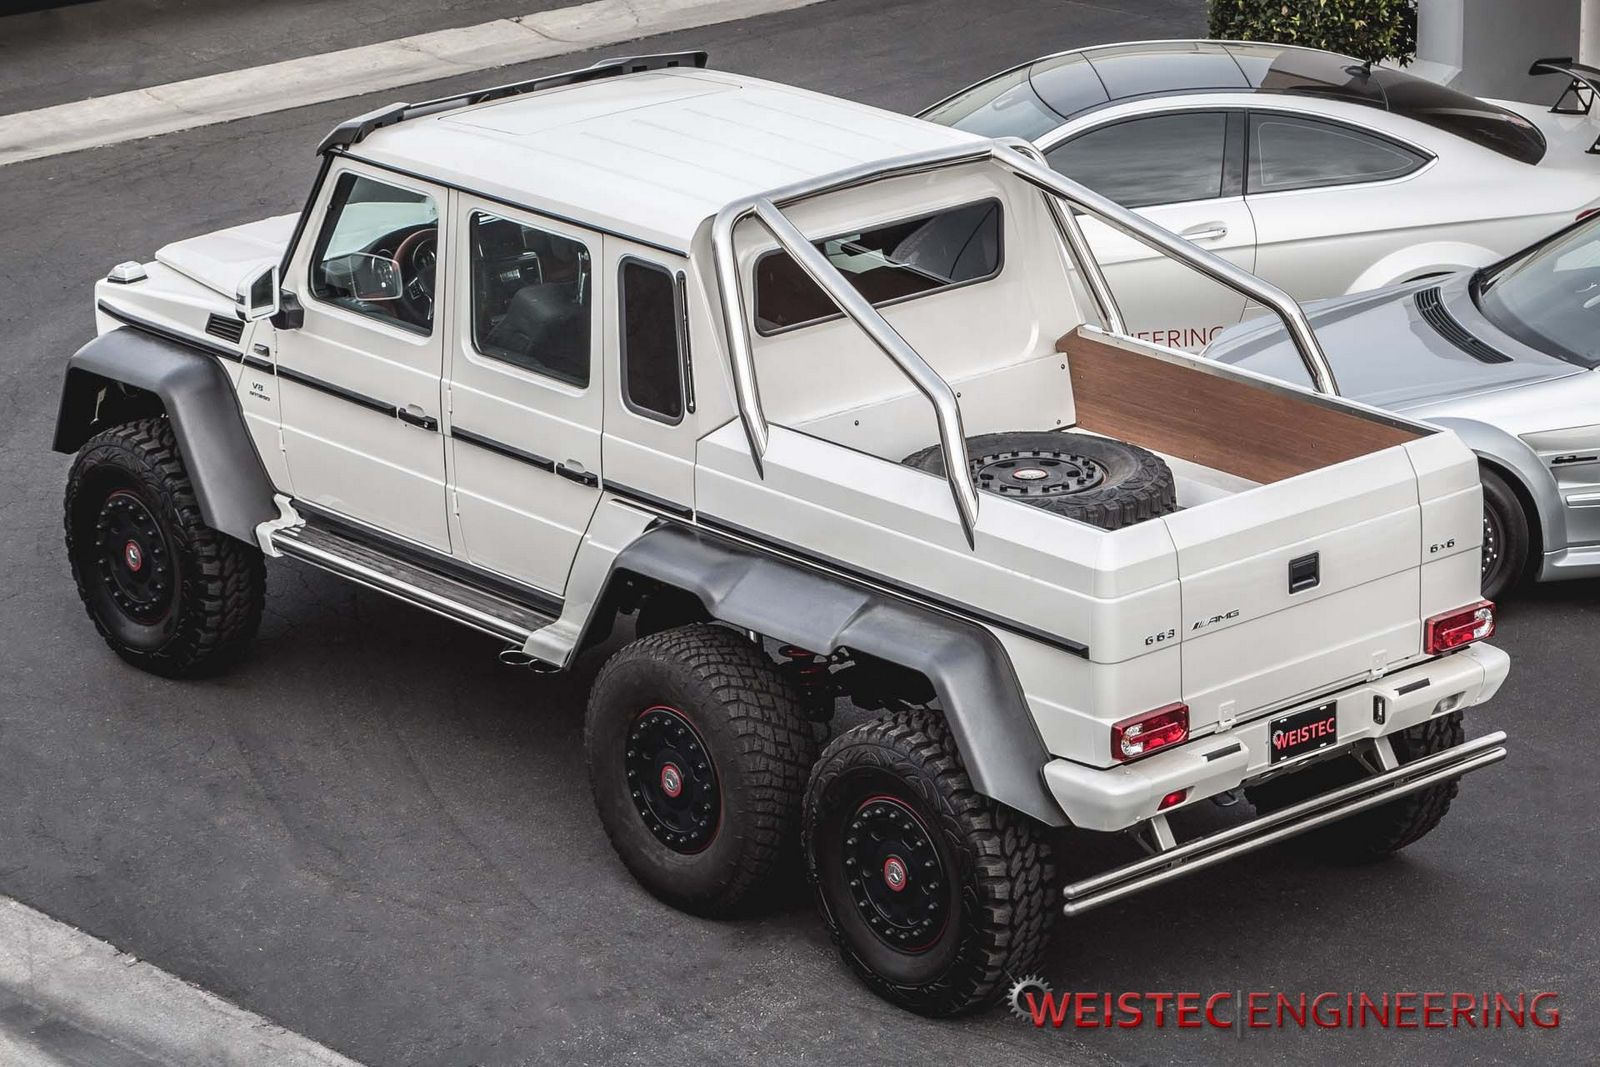 official mercedes benz g63 amg 6x6 by weistec engineering. Black Bedroom Furniture Sets. Home Design Ideas